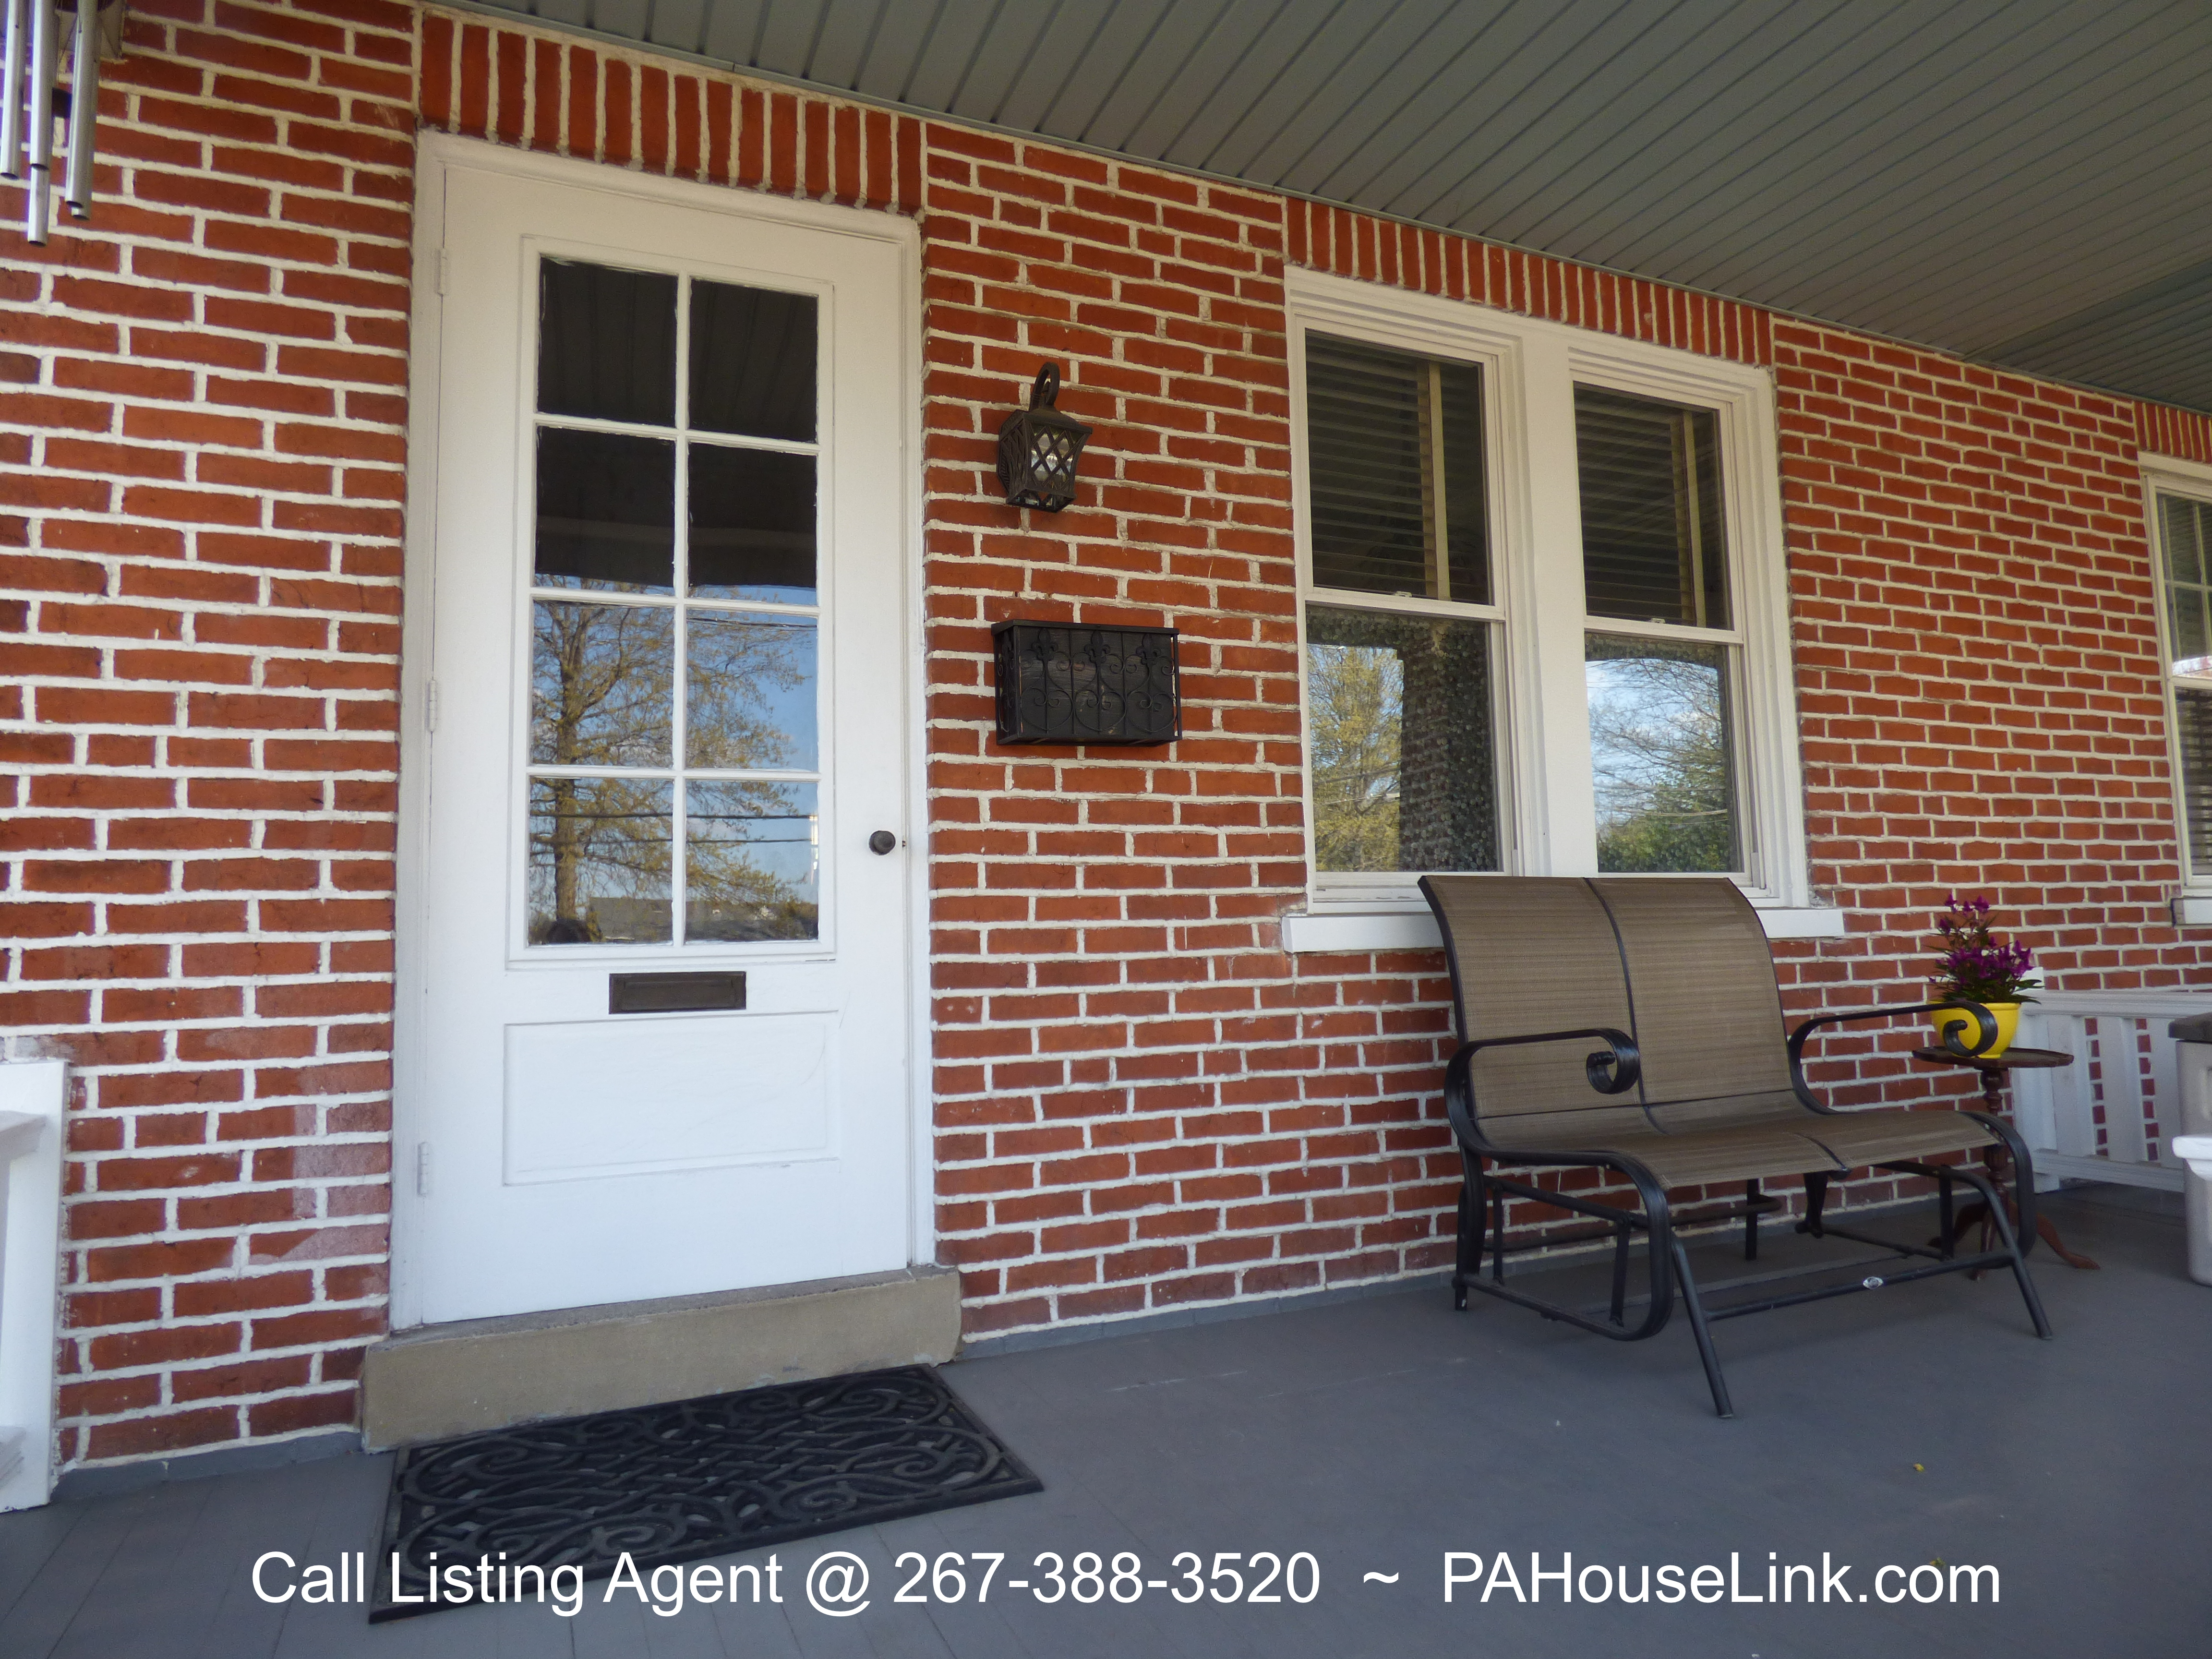 Home For Sale in Perkasie, PA – 510 W Park Ave